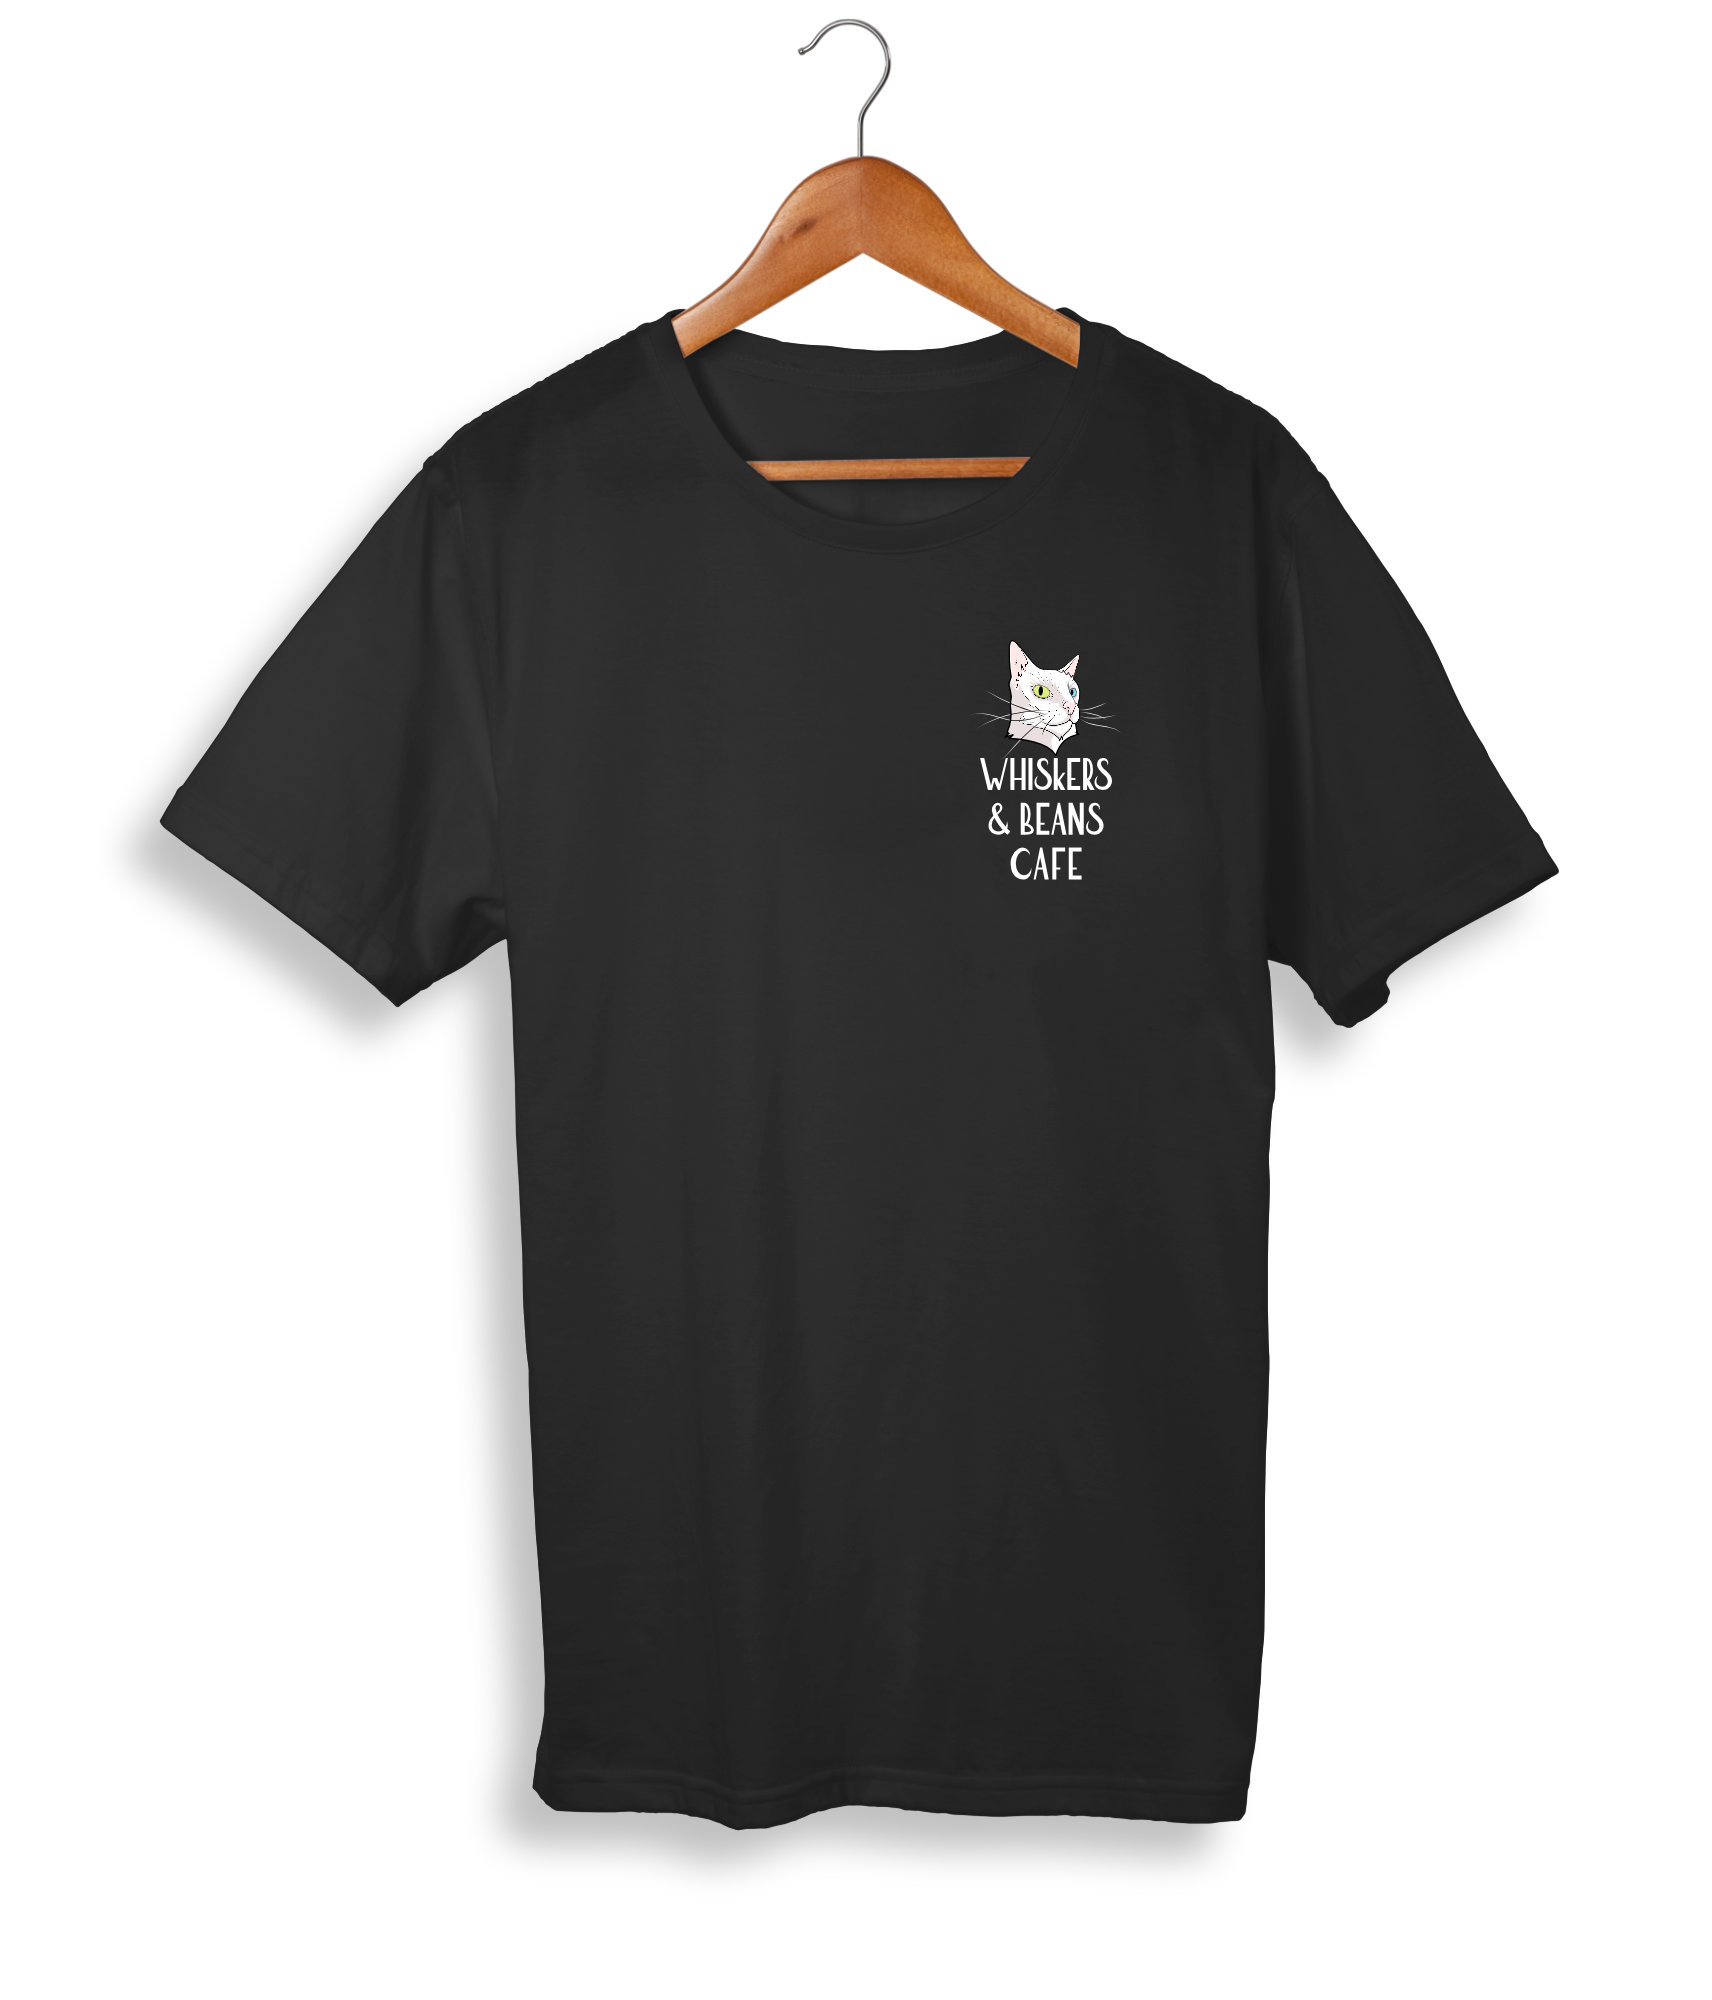 Whiskers & Beans Cafe tshirt